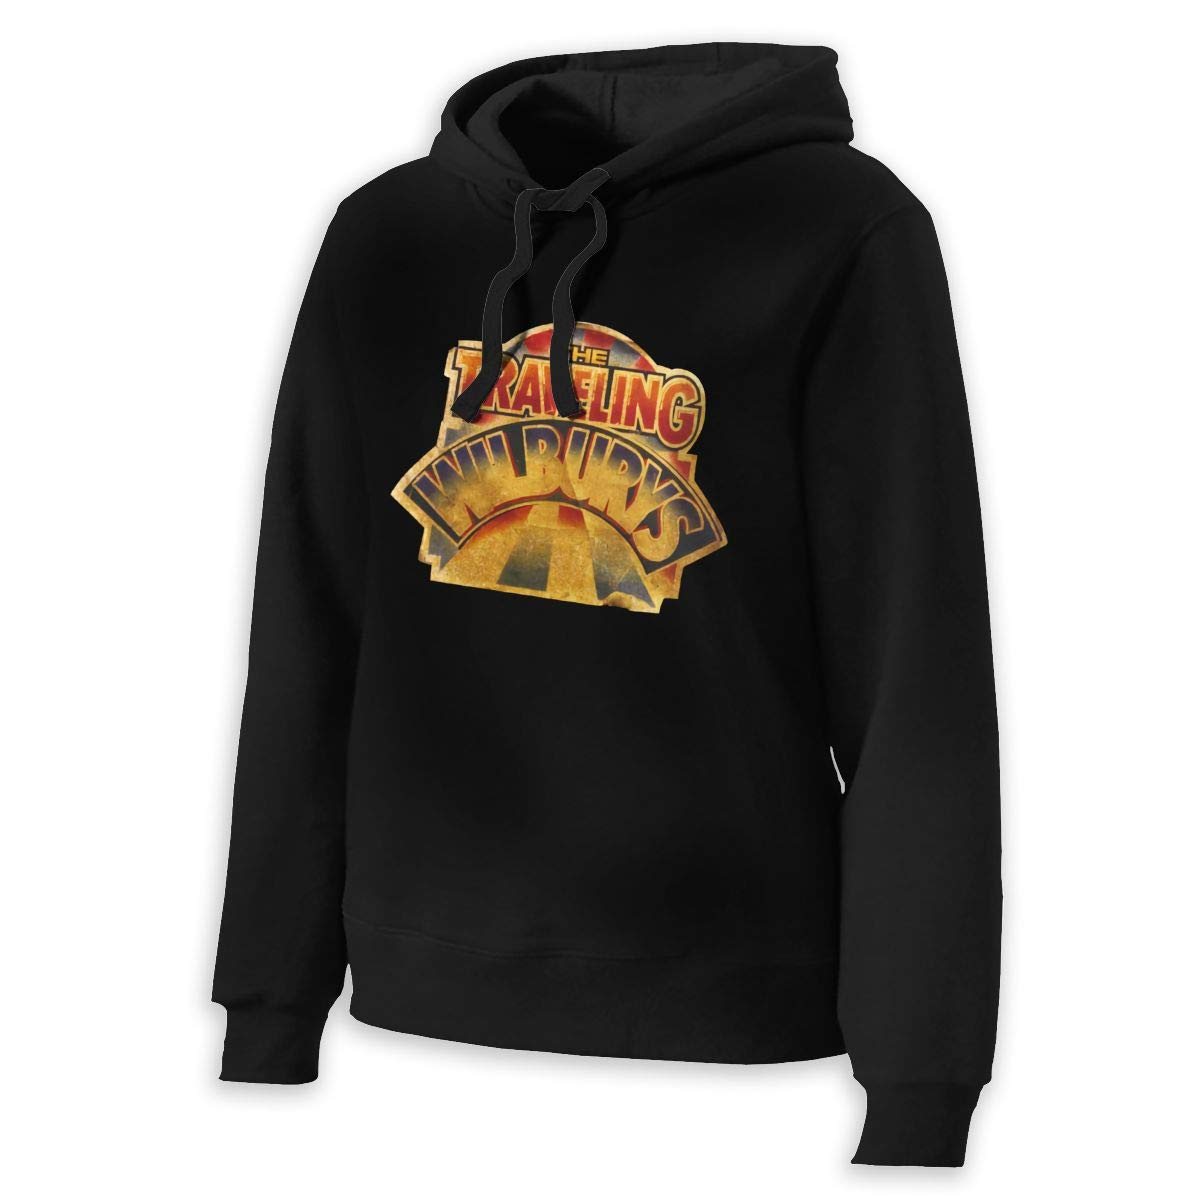 Zxc141520 Woman Traveling Wilburys Collection Hoodie Sweatshirt